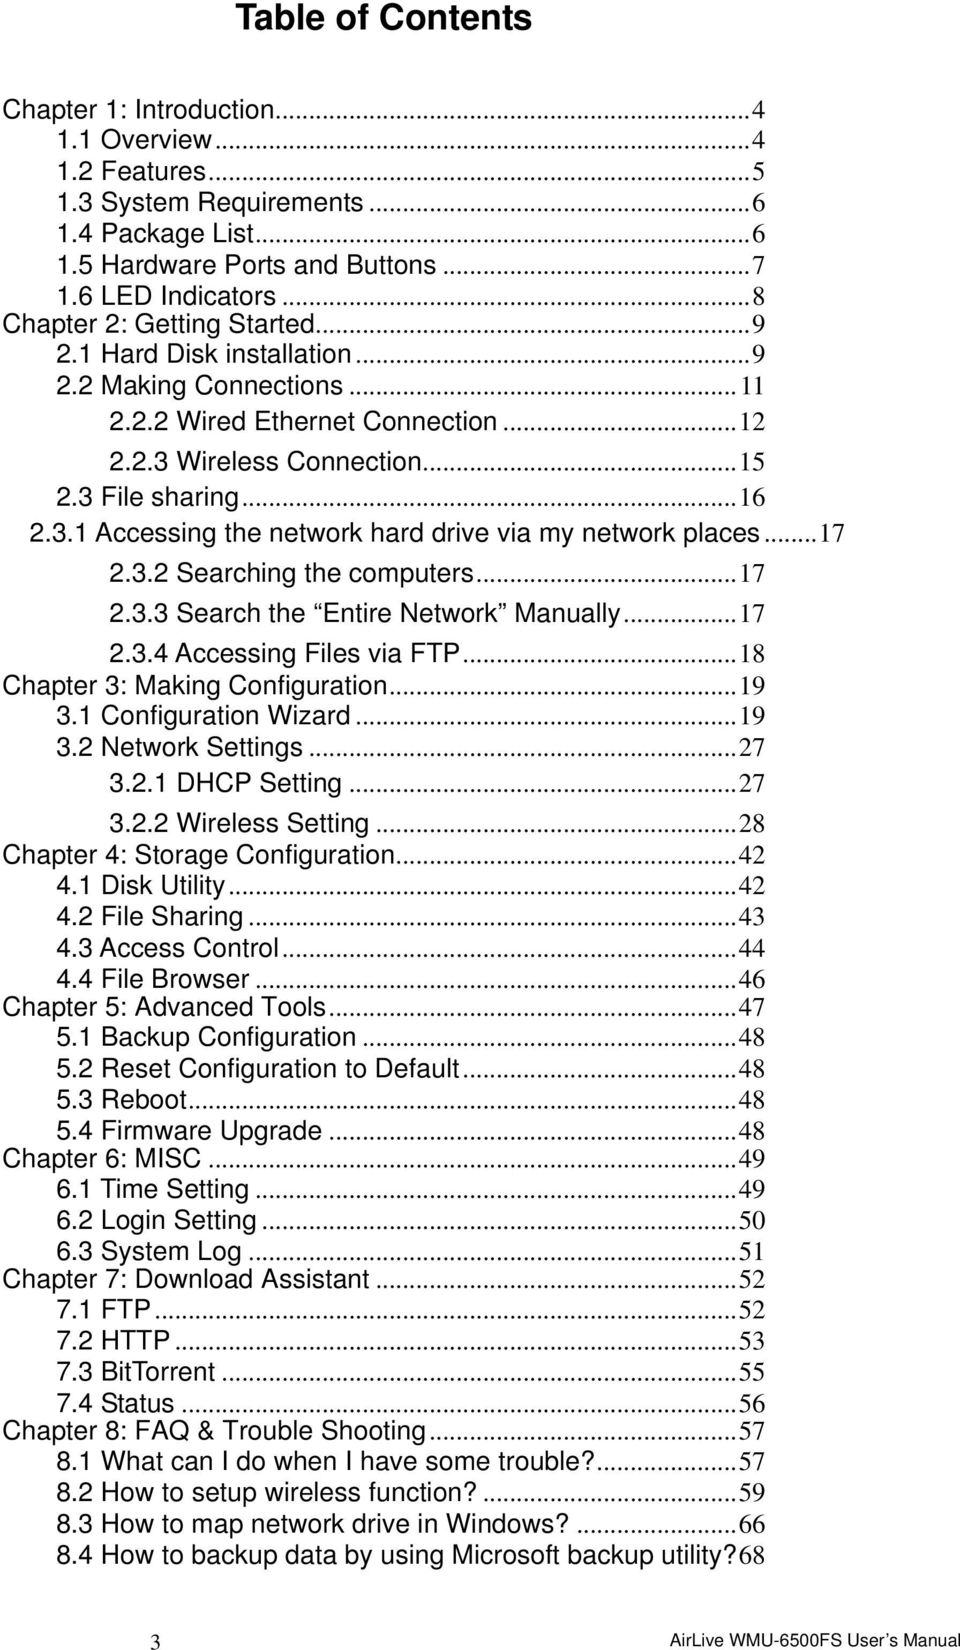 ..17 2.3.2 Searching the computers...17 2.3.3 Search the Entire Network Manually...17 2.3.4 Accessing Files via FTP...18 Chapter 3: Making Configuration...19 3.1 Configuration Wizard...19 3.2 Network Settings.